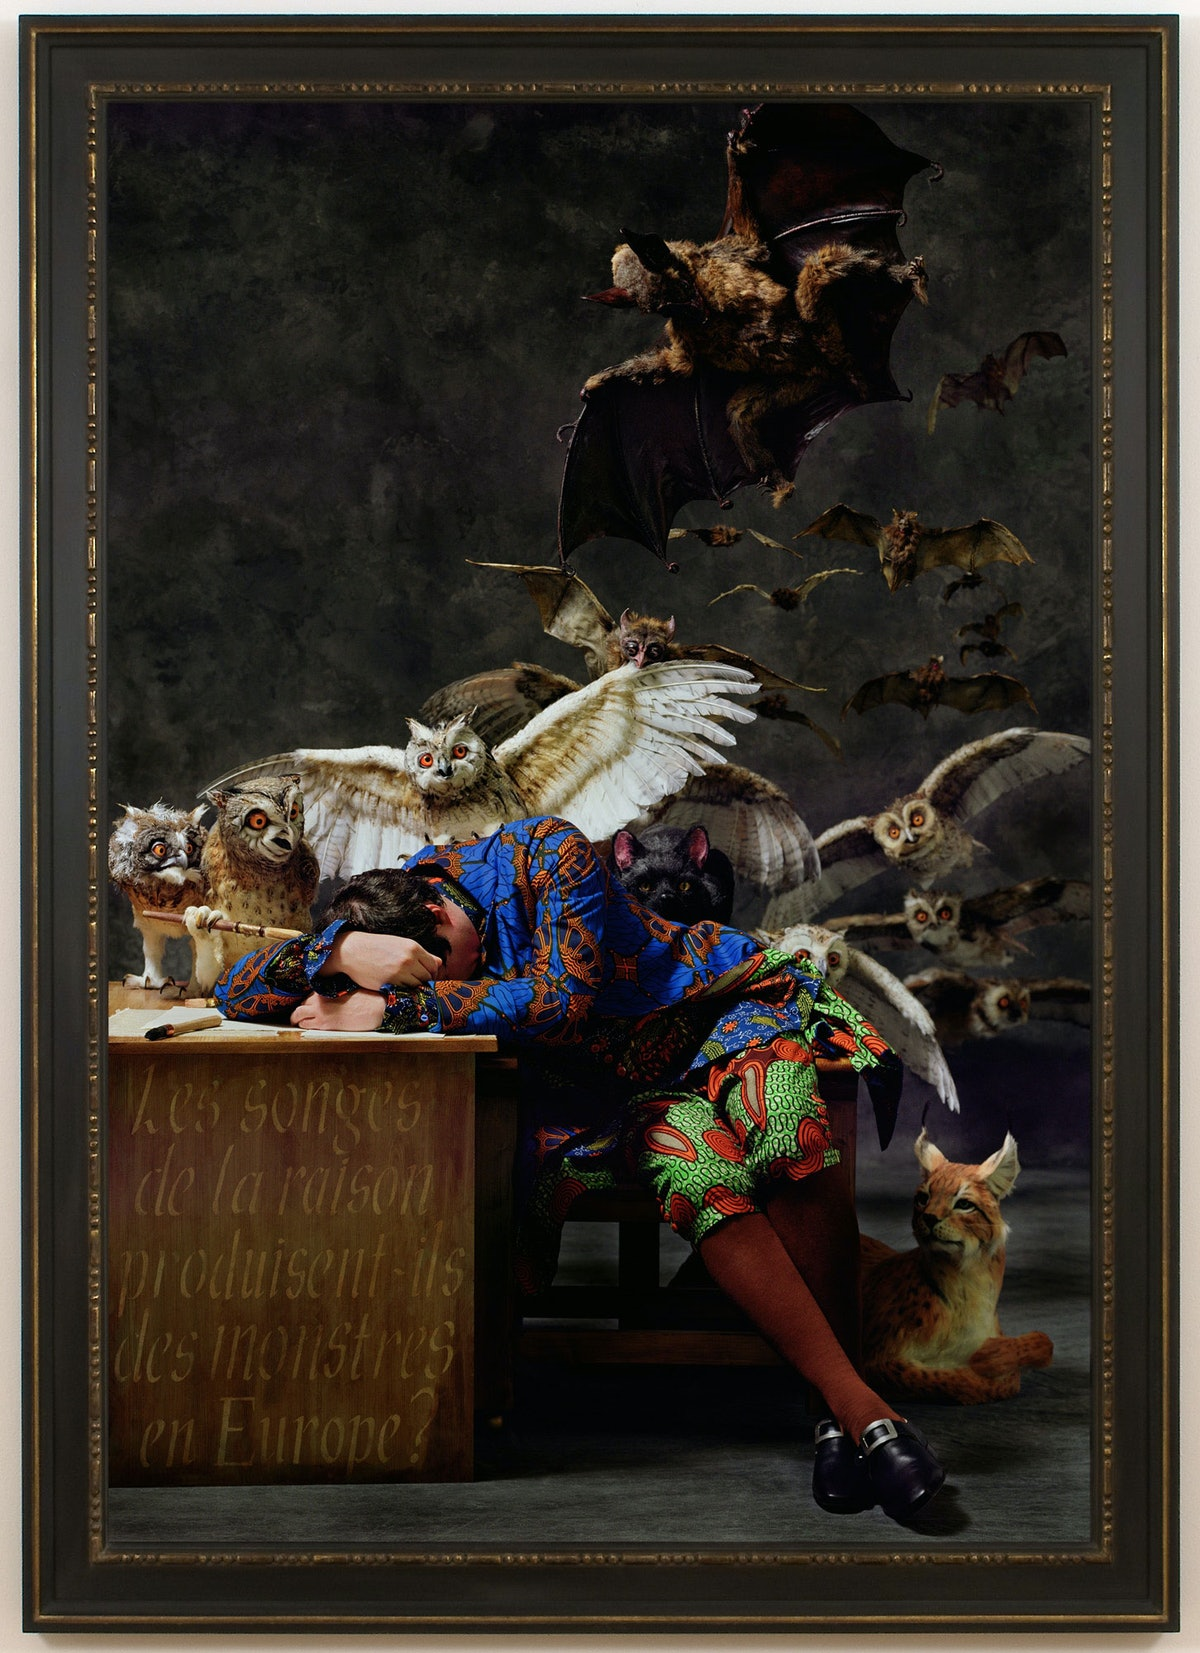 The-Sleep-of-Reason-Produces-Monsters-(Europe),-2008